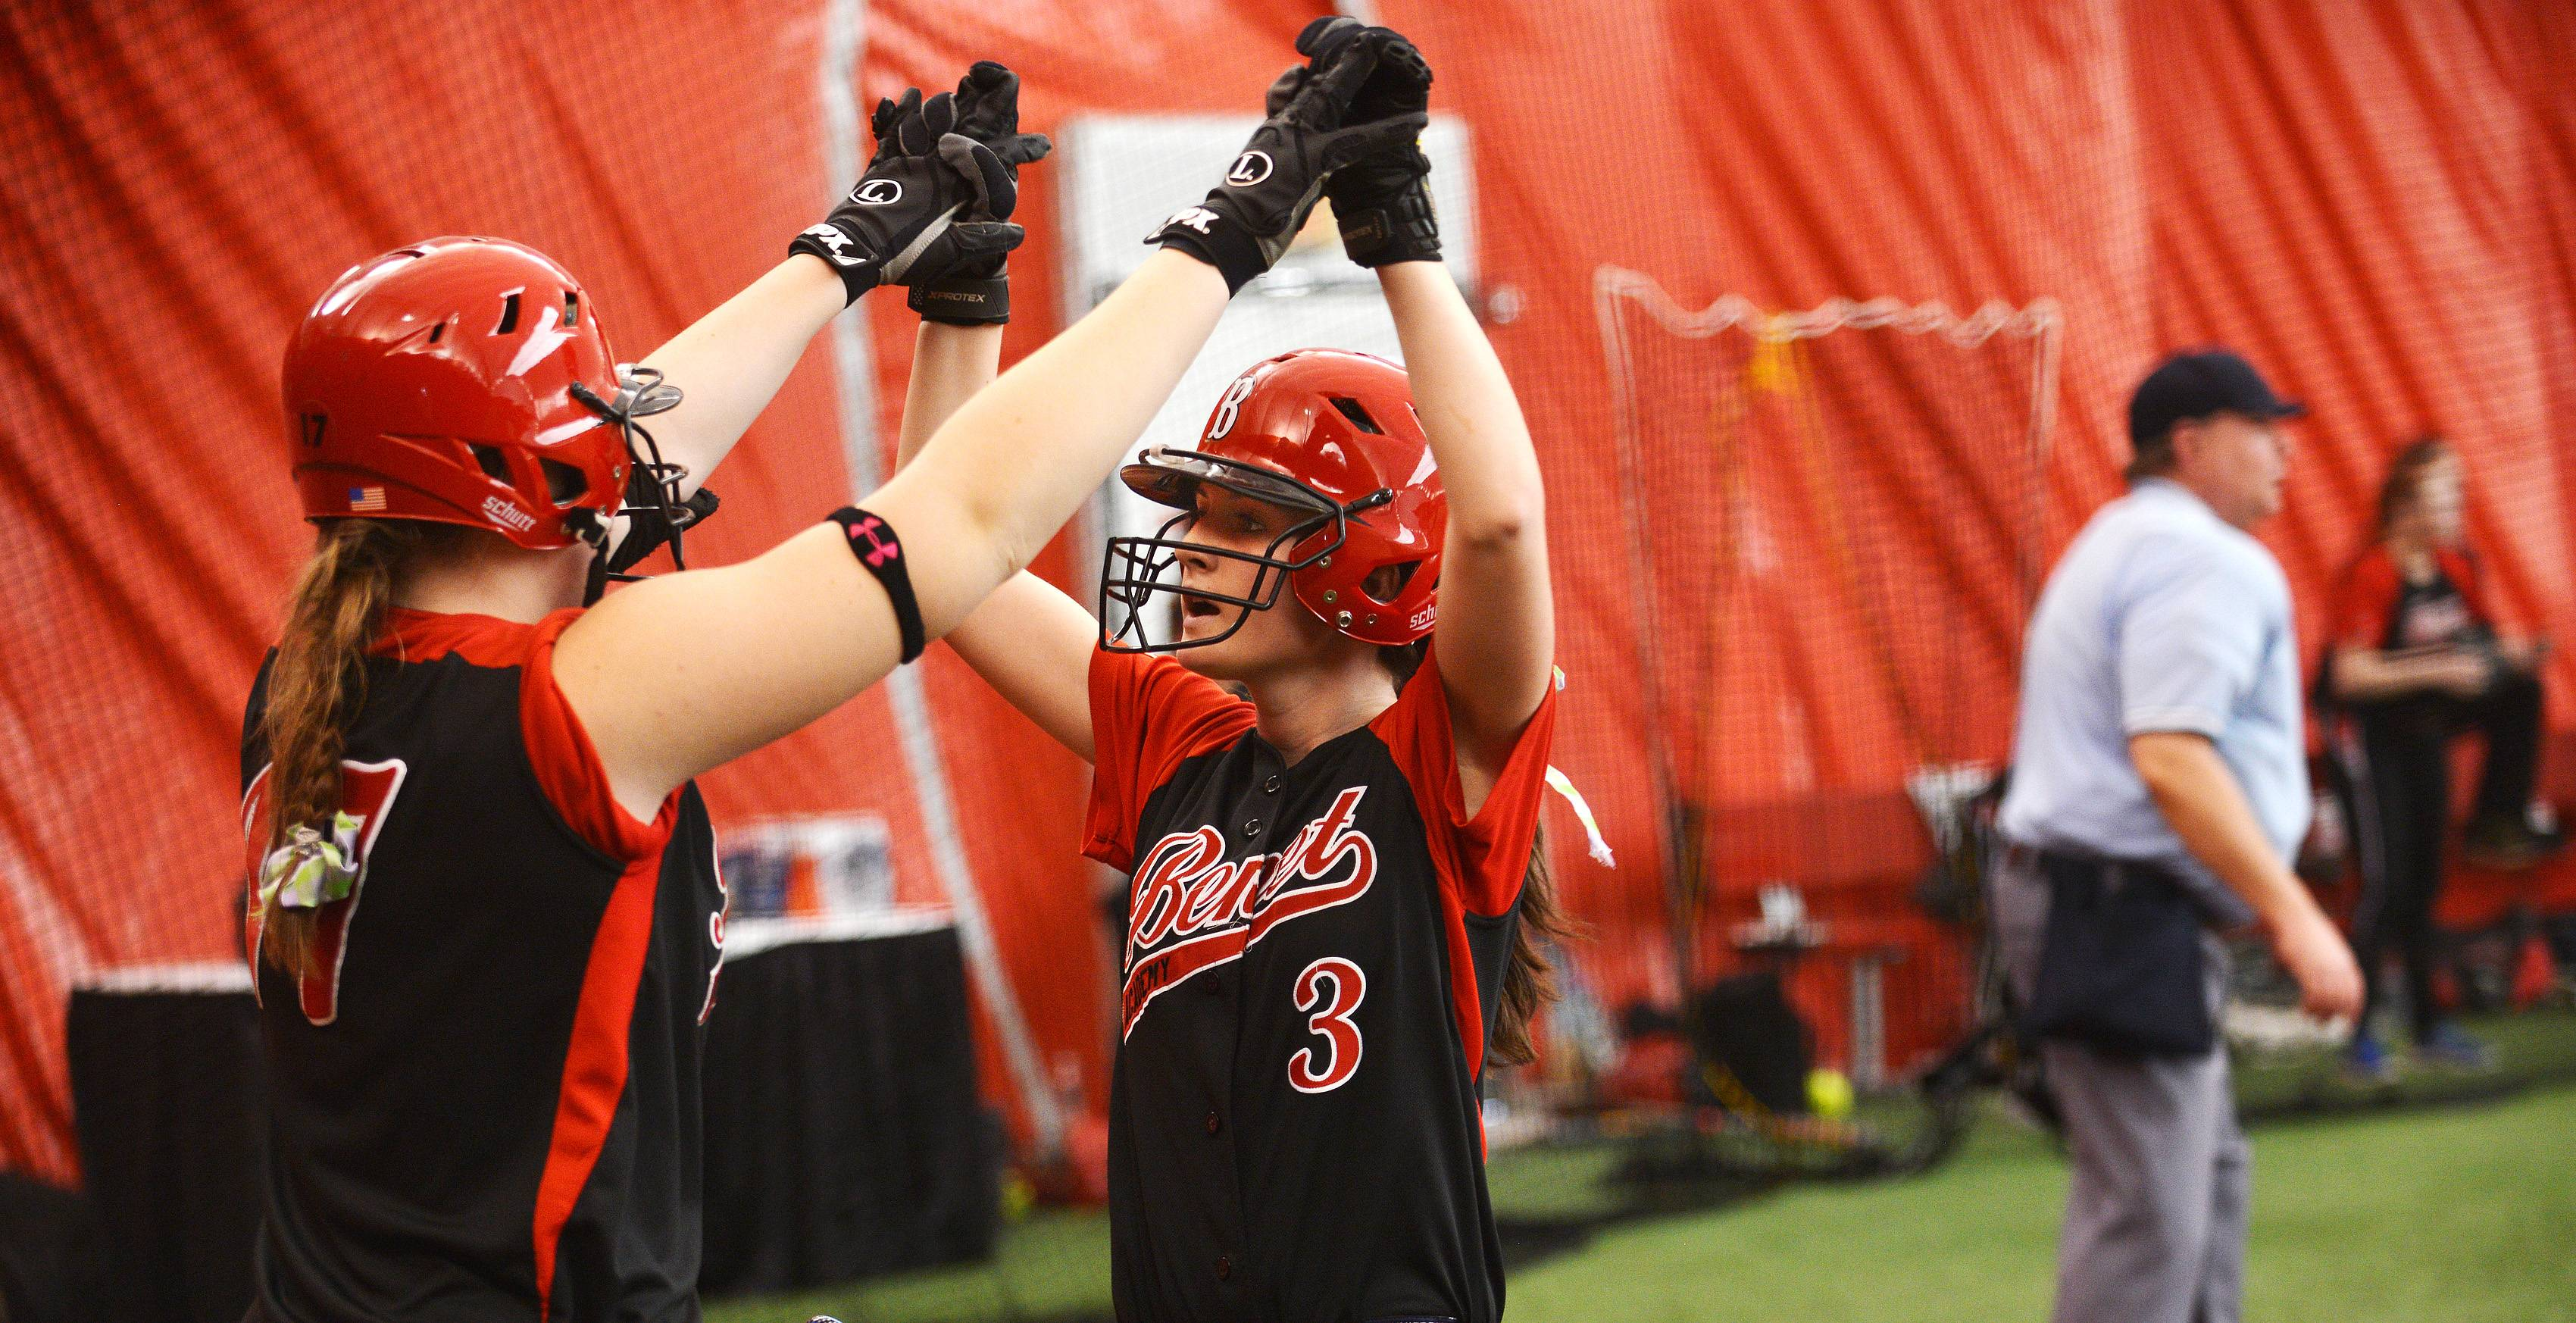 Benet played Neuqua Valley Monday, March 31 in indoor softball action in Rosemont. Benet's Emily York, left, high fives Shannon Mills in the second inning after she scored.